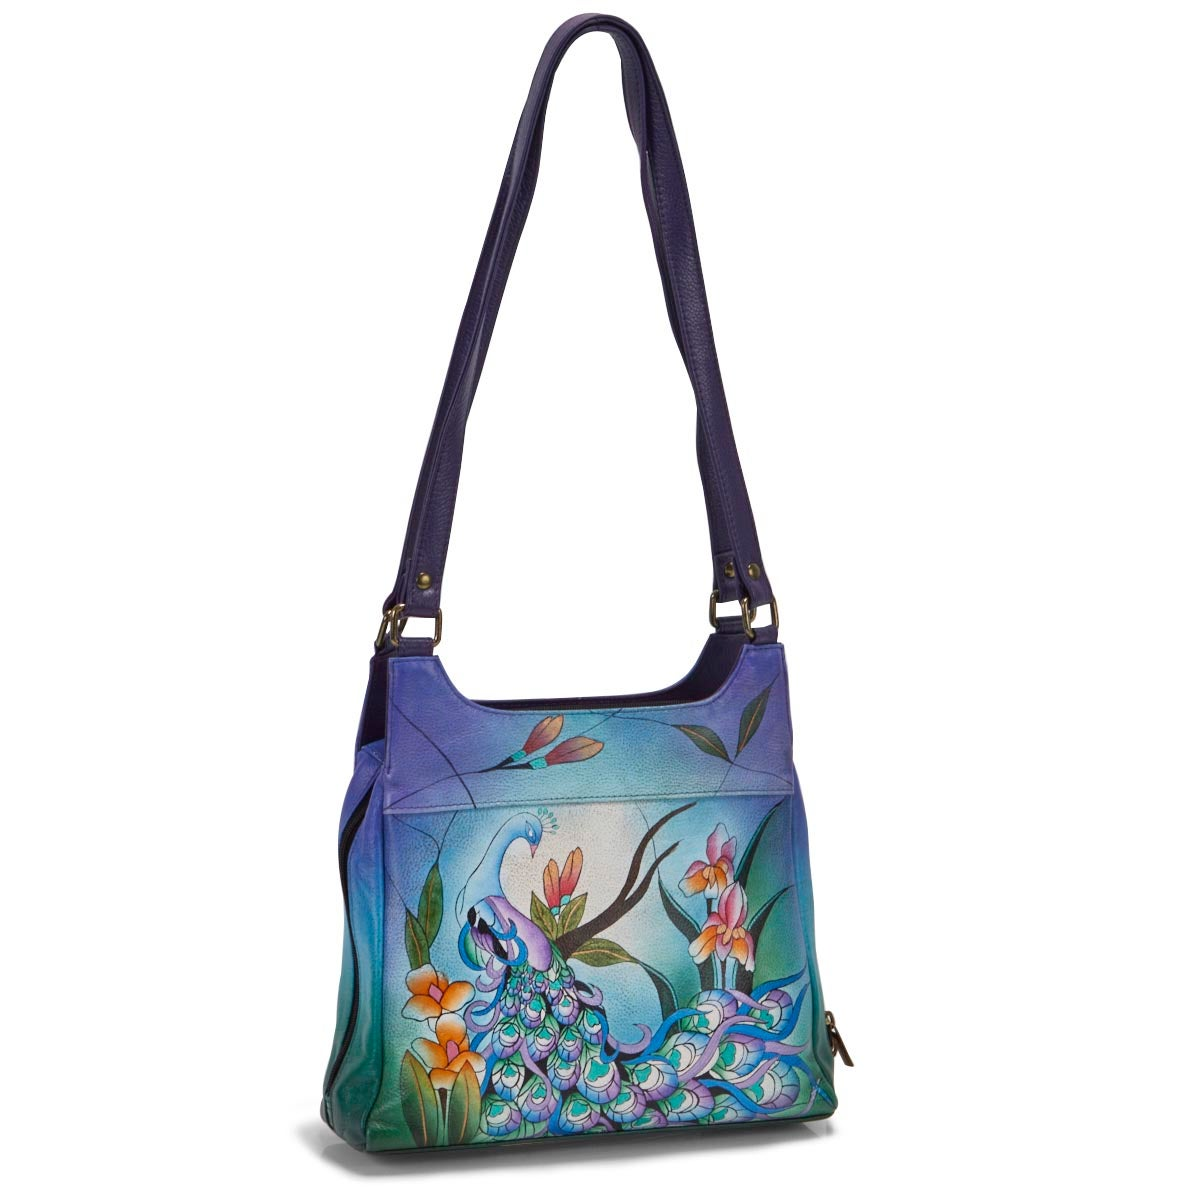 Painted lthr Midnight Peacock satchel